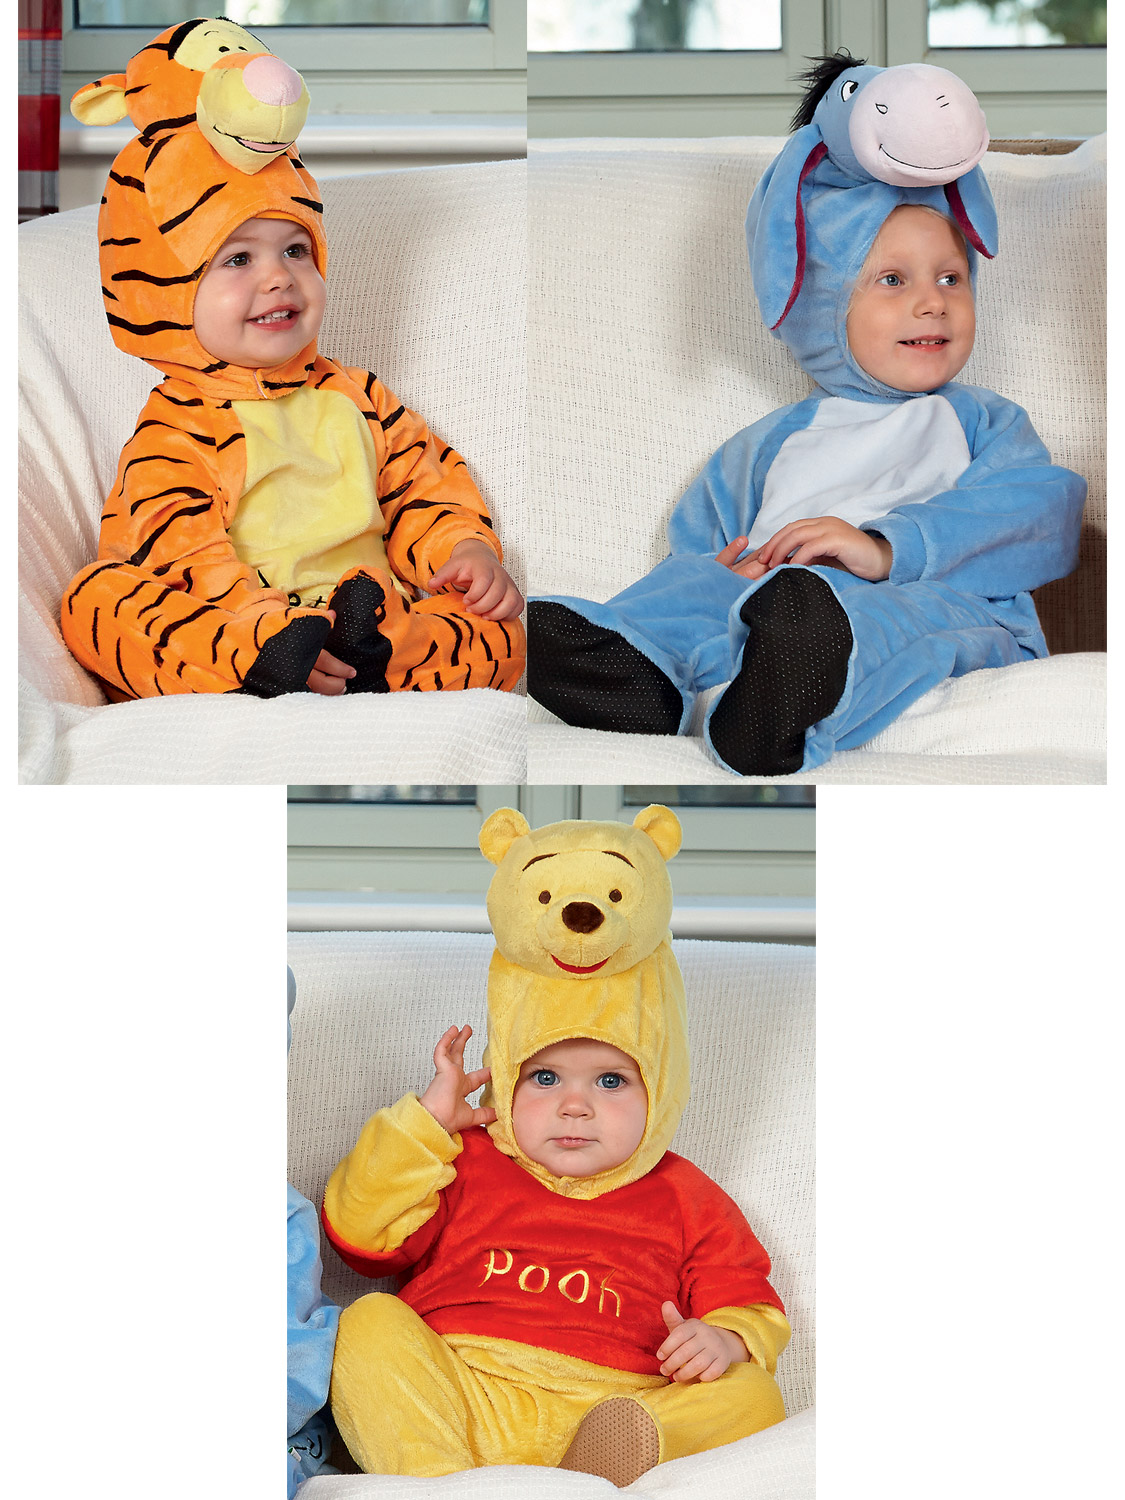 f28a6e5e0a72 Details about Baby Disney Winnie the Pooh Romper Toddler Eeyore Fancy Dress  Tigger Costume Kid